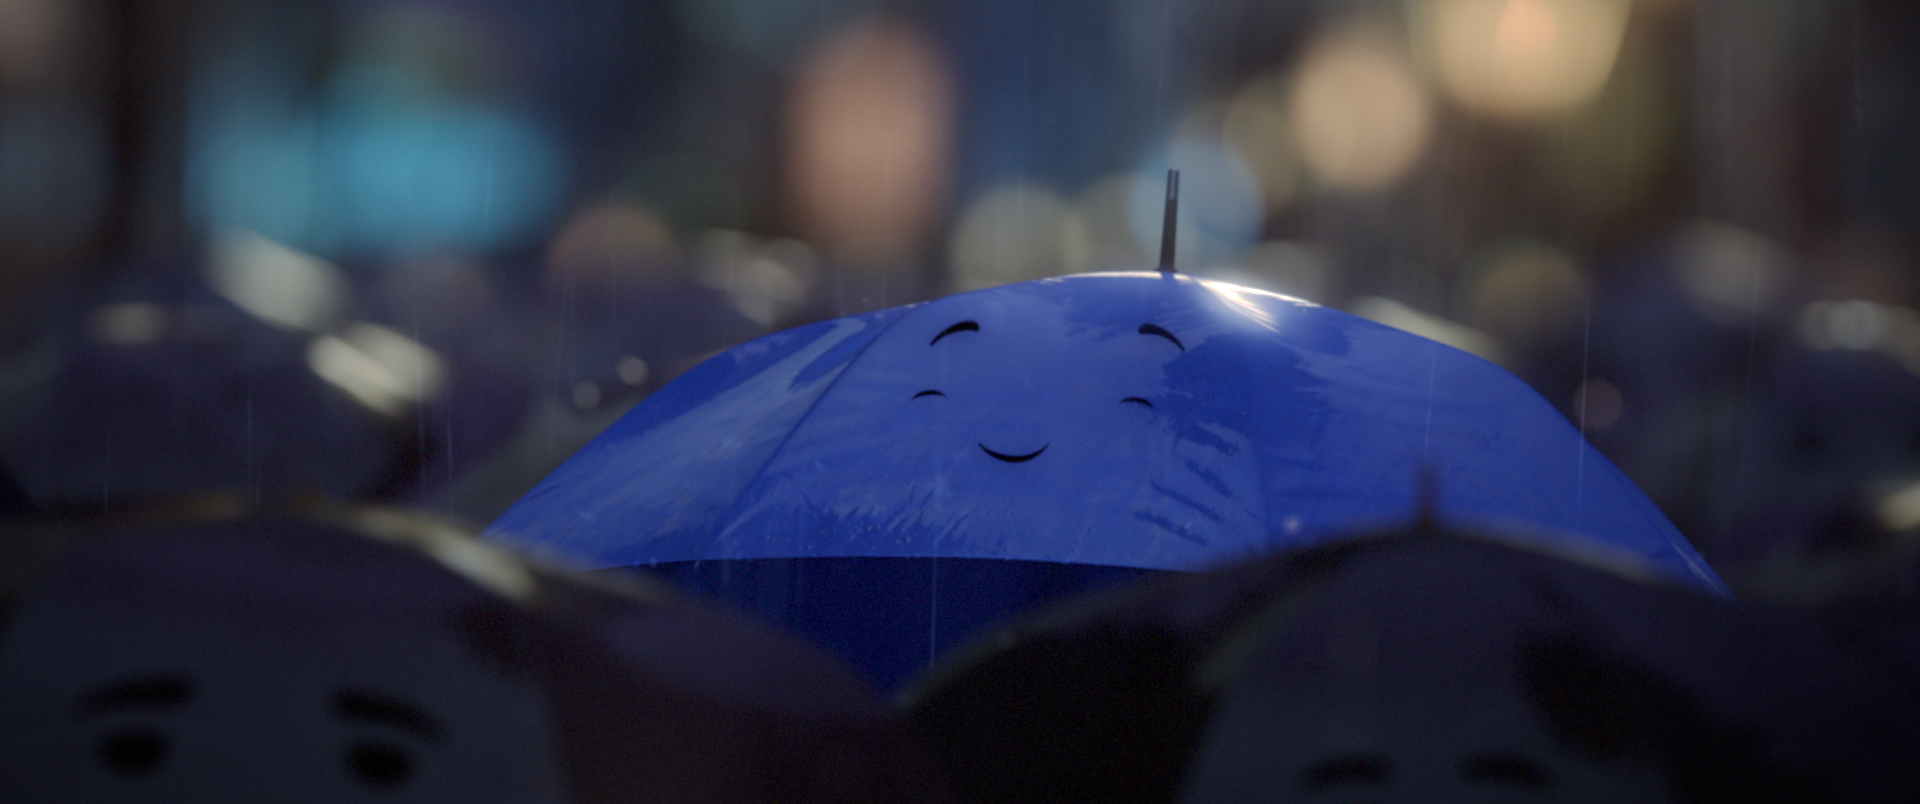 Pixar disney le parapluie bleu the blue umbrella